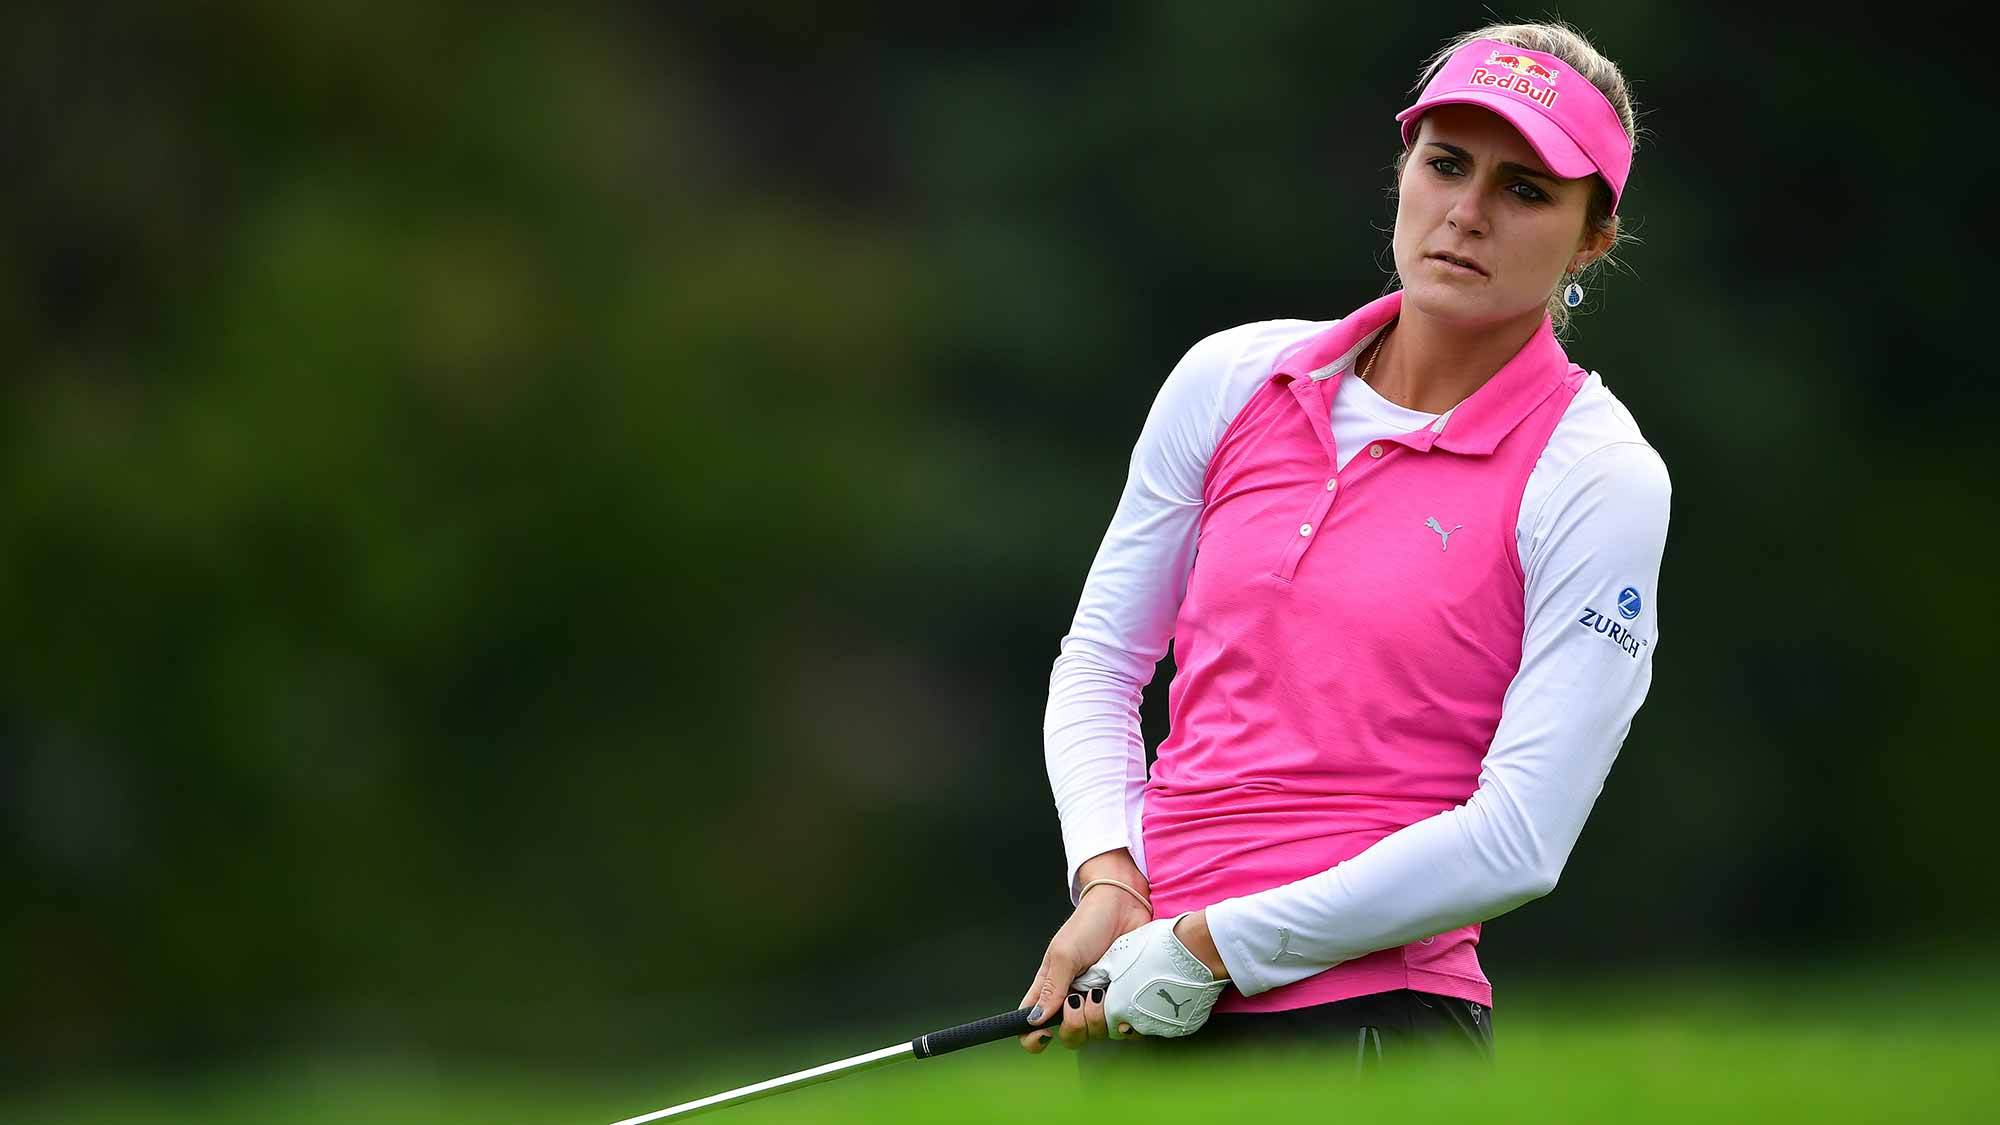 Lexi Thompson during the pro-am prior to the start of the Evian Championship at Evian Resort Golf Club